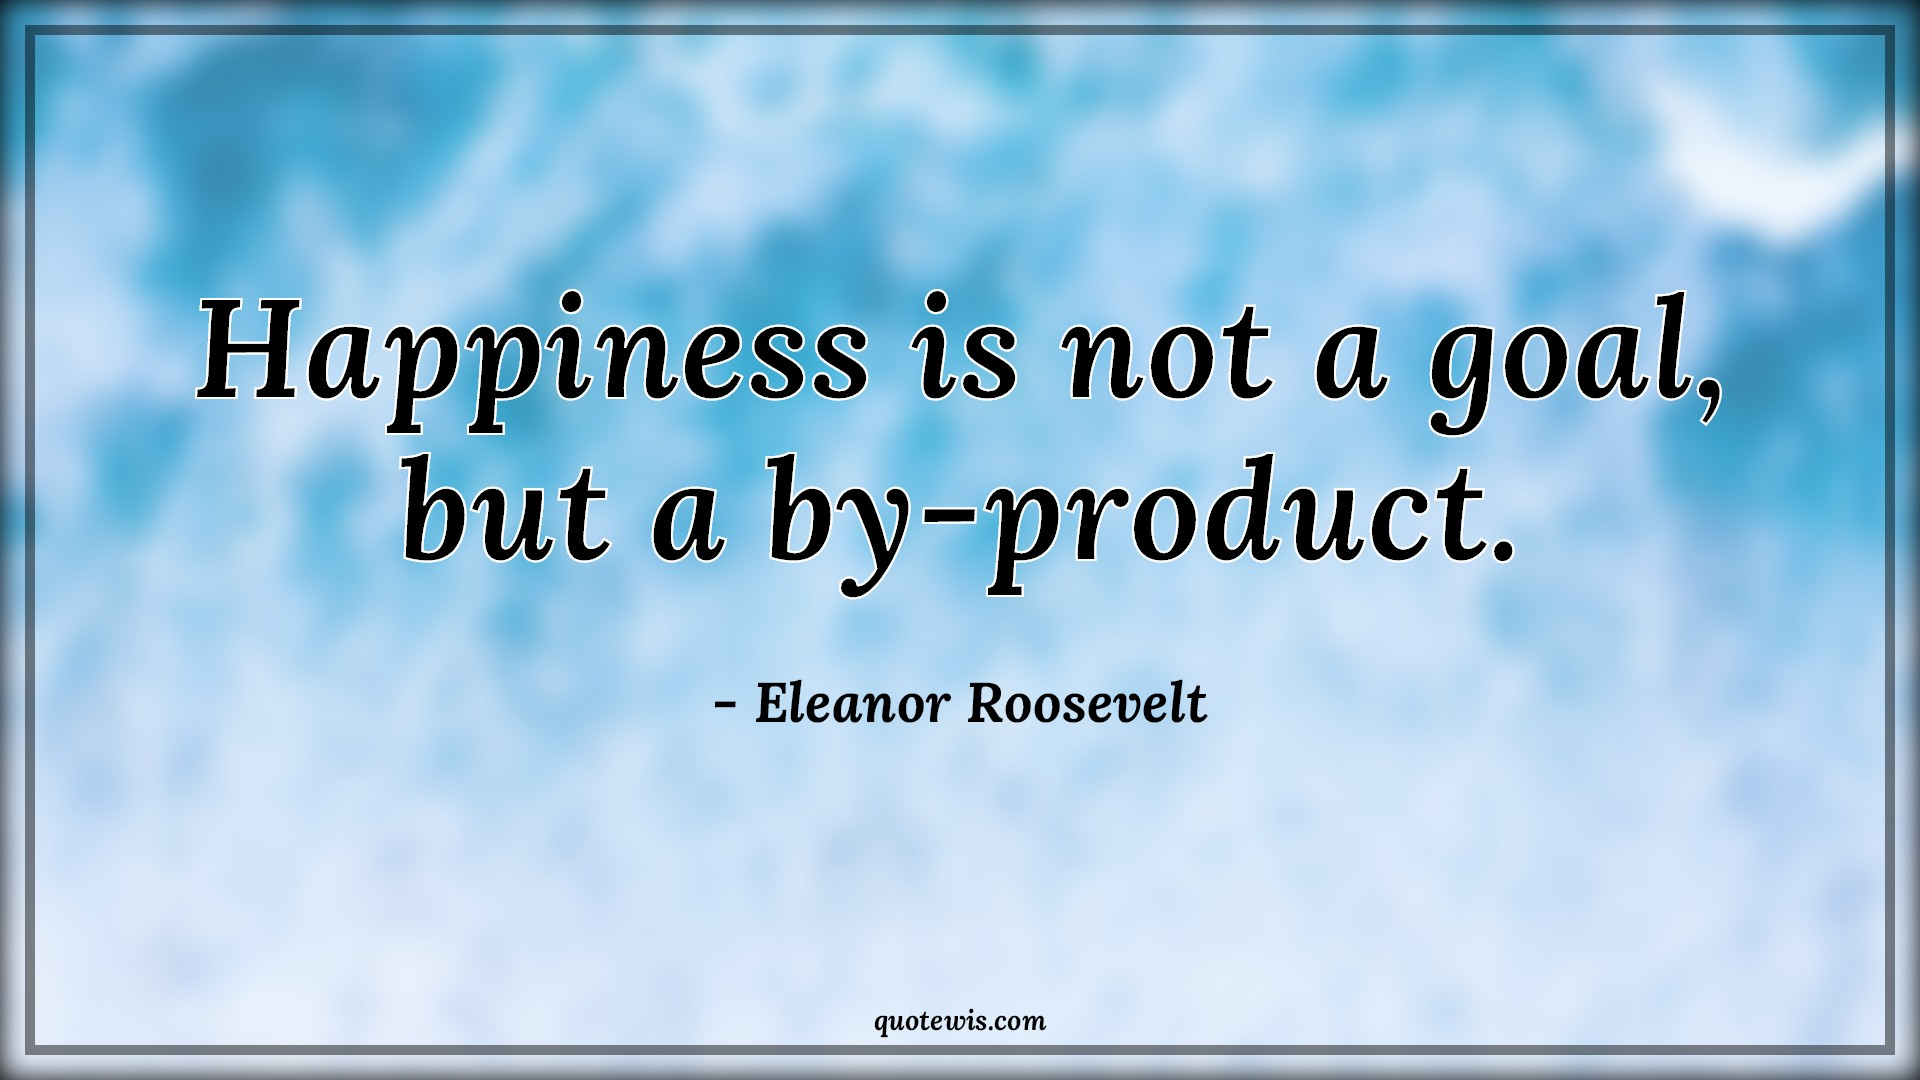 Happiness is not a goal, but a by-product.